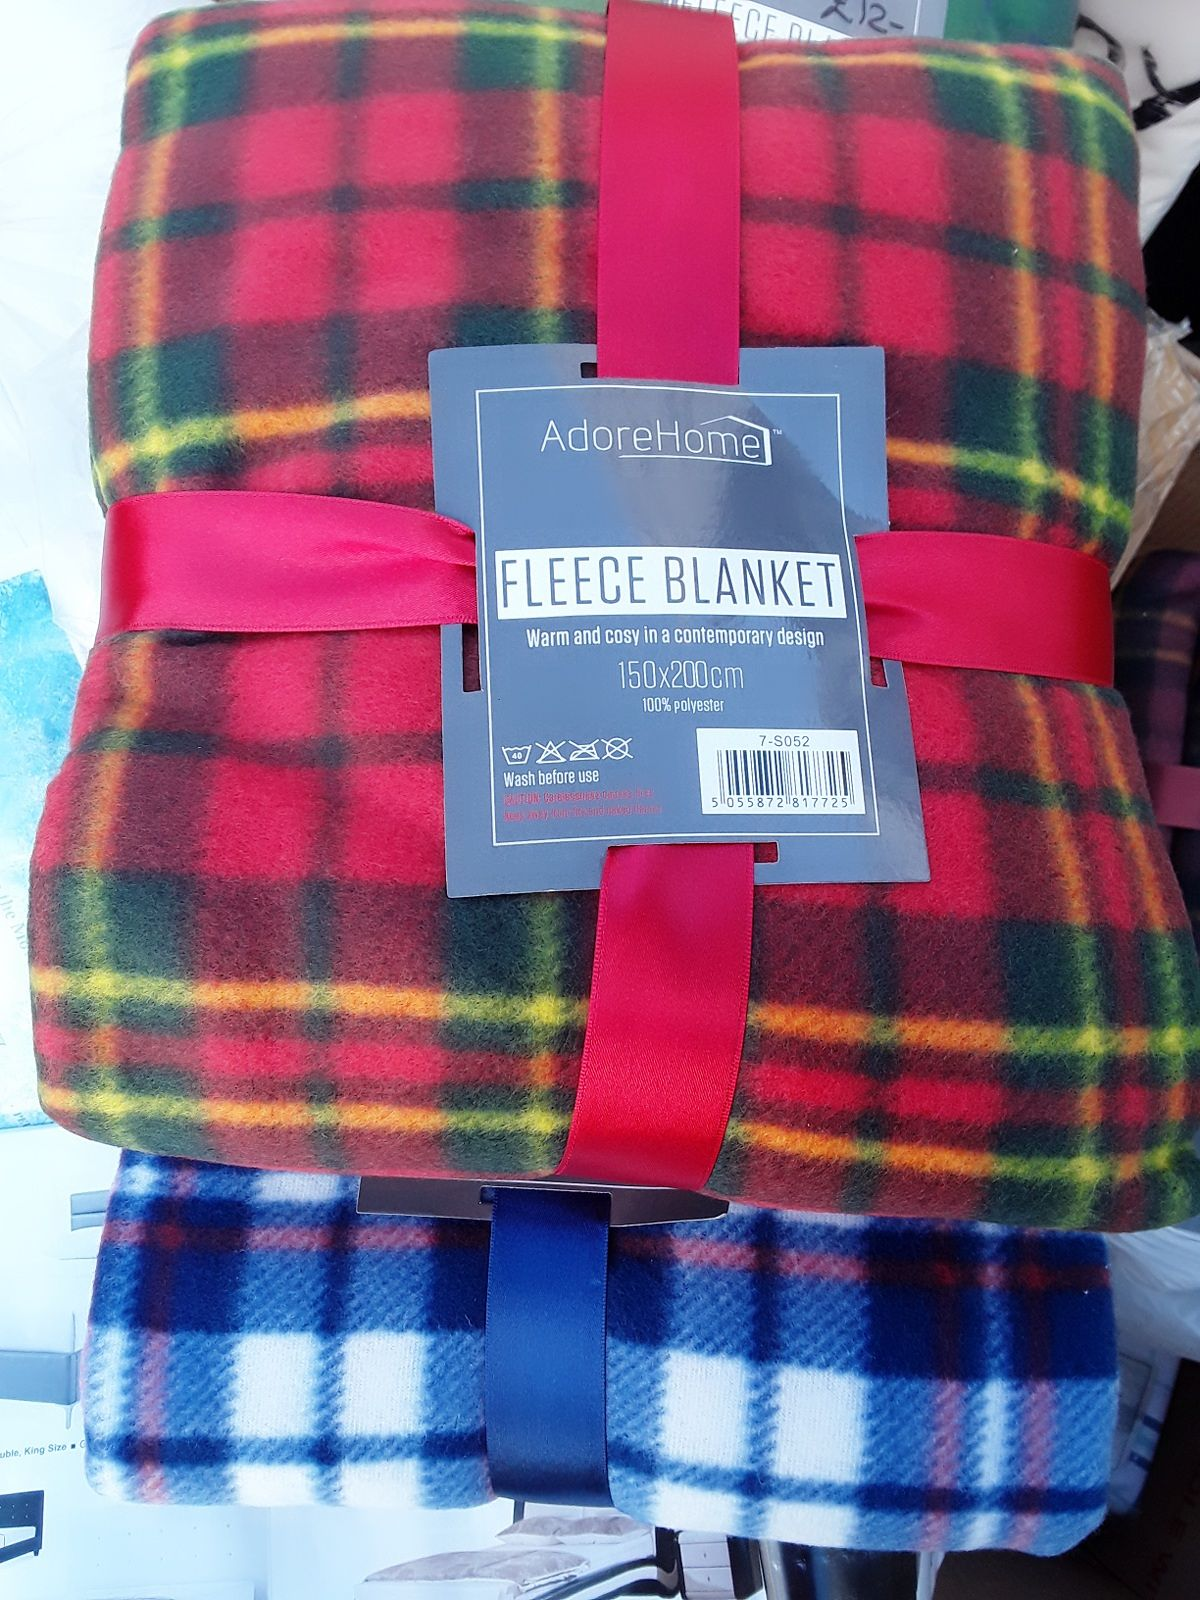 Best buy winter bedding now in stock.  Cosy fleece throws and flannellette sheet sets.